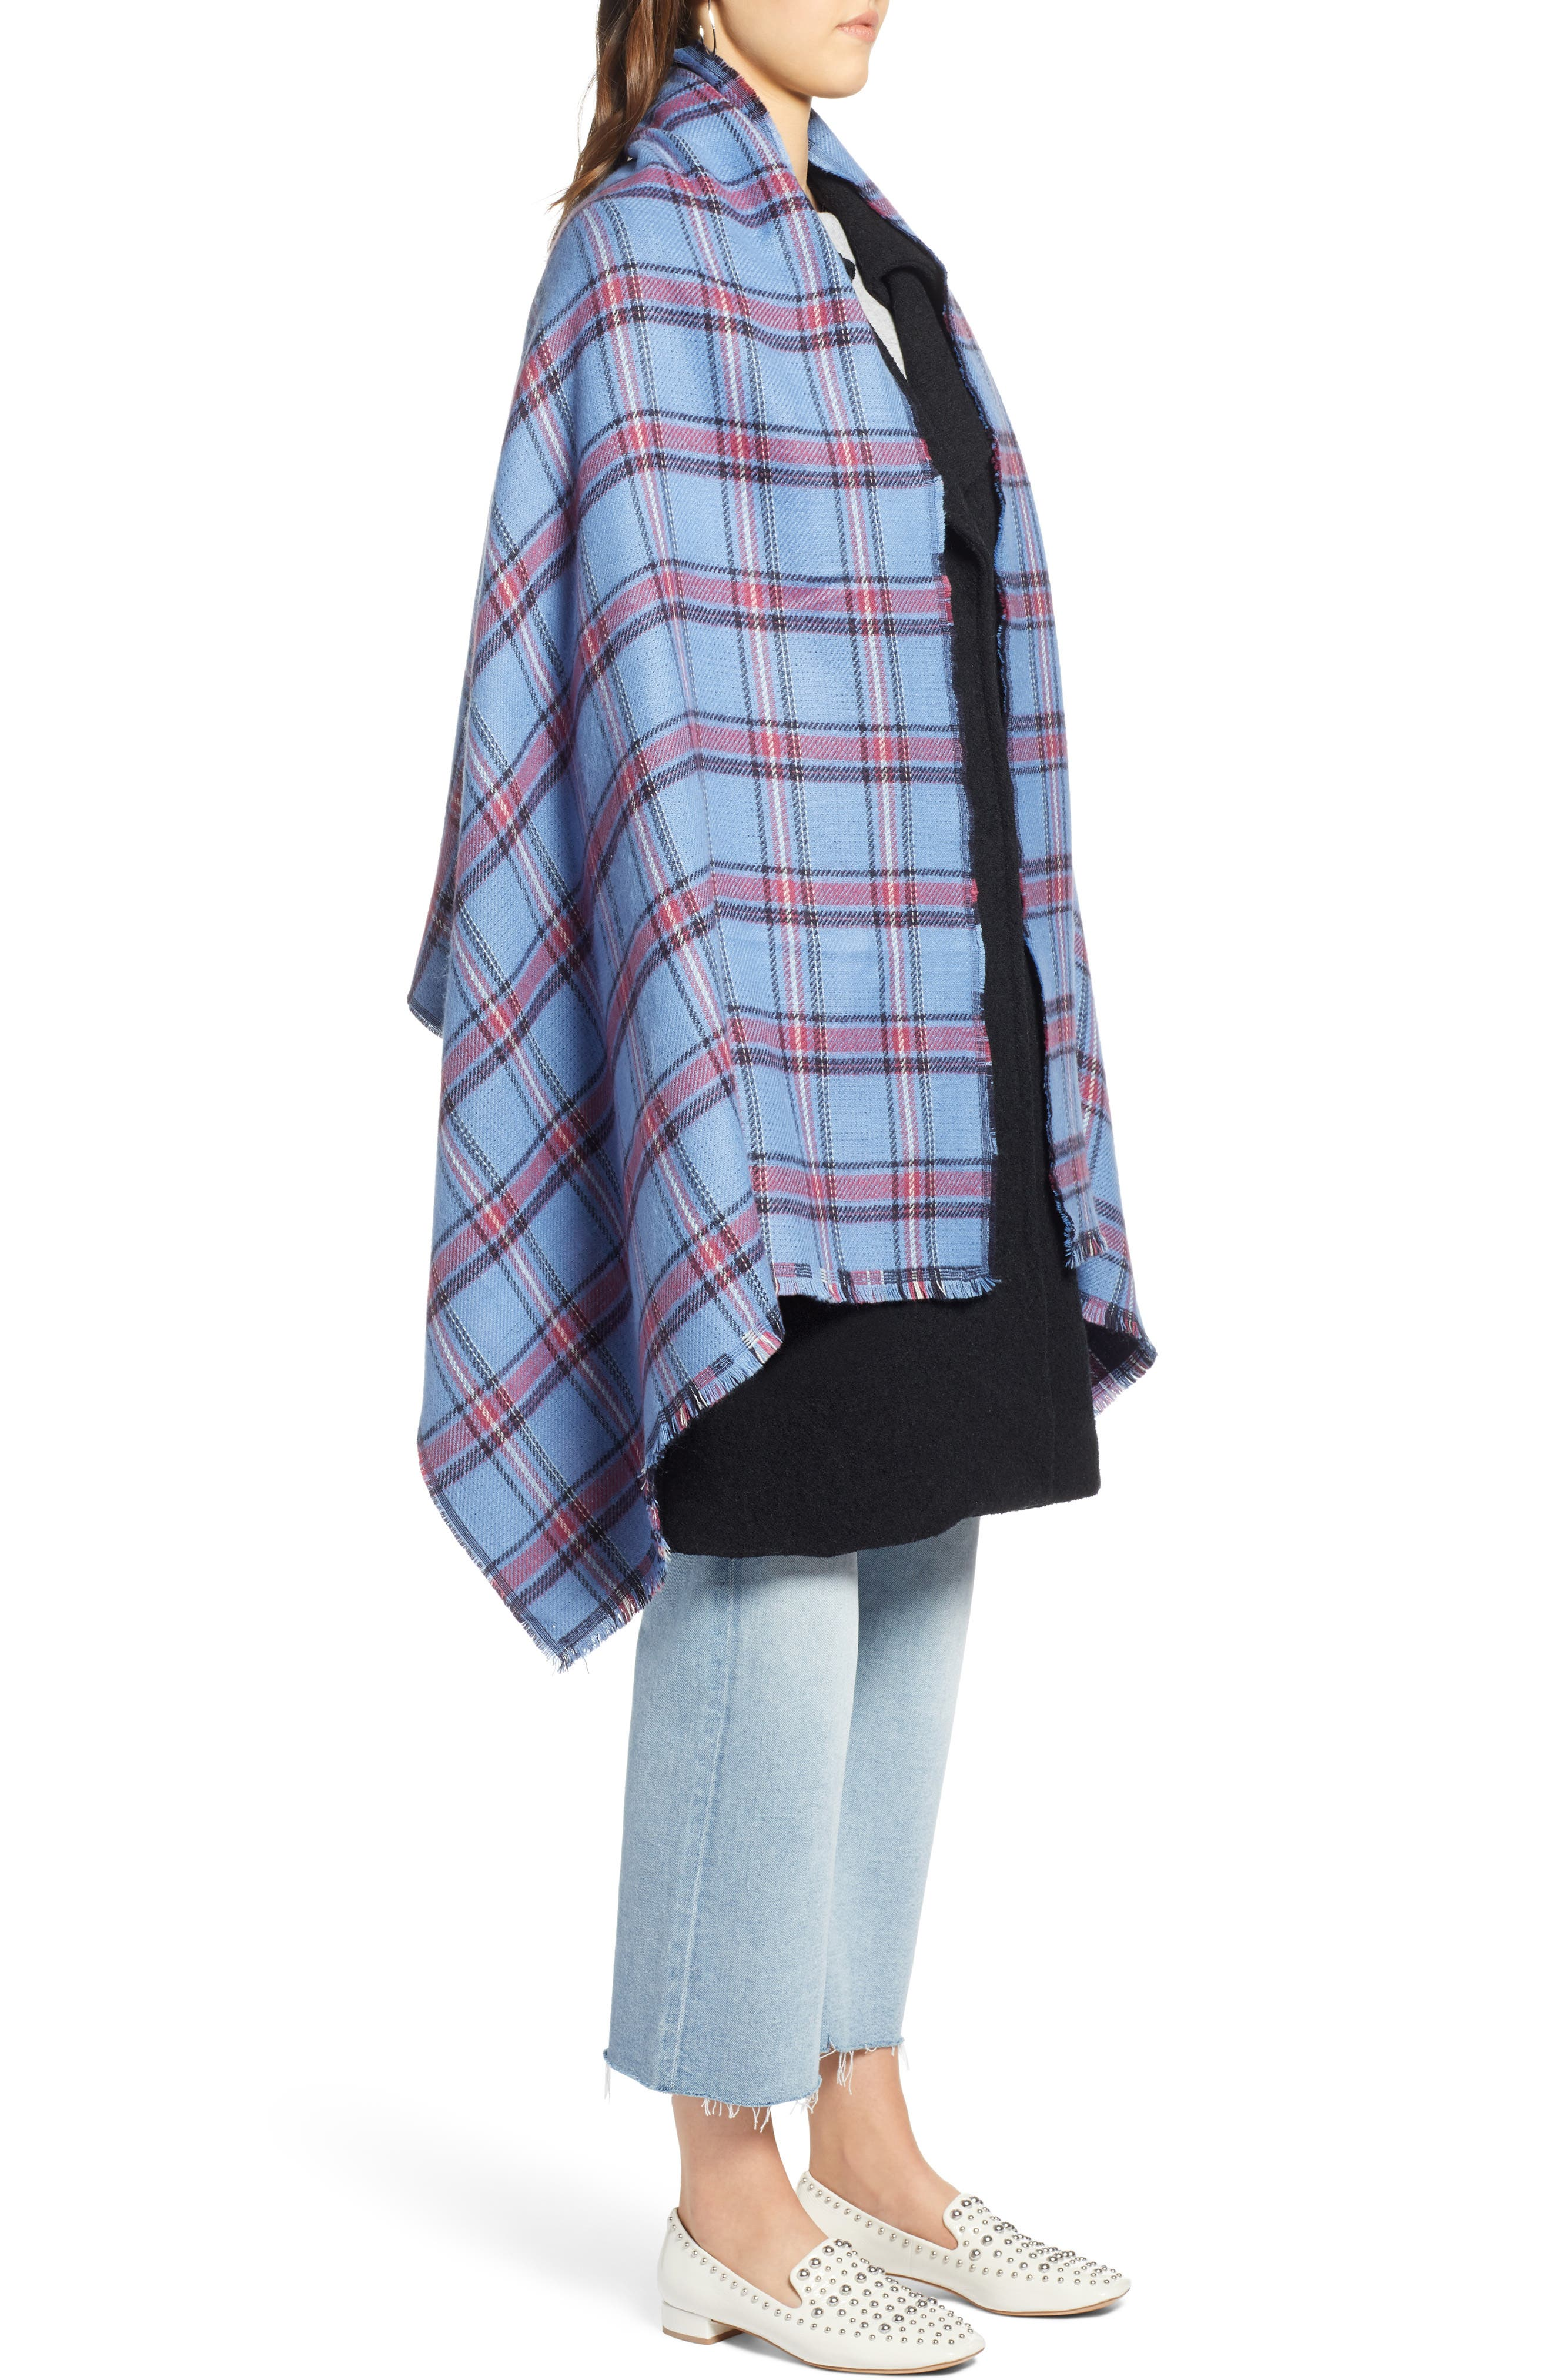 x Atlantic-Pacific Plaid Double Sided Blanket Wrap,                             Alternate thumbnail 5, color,                             410